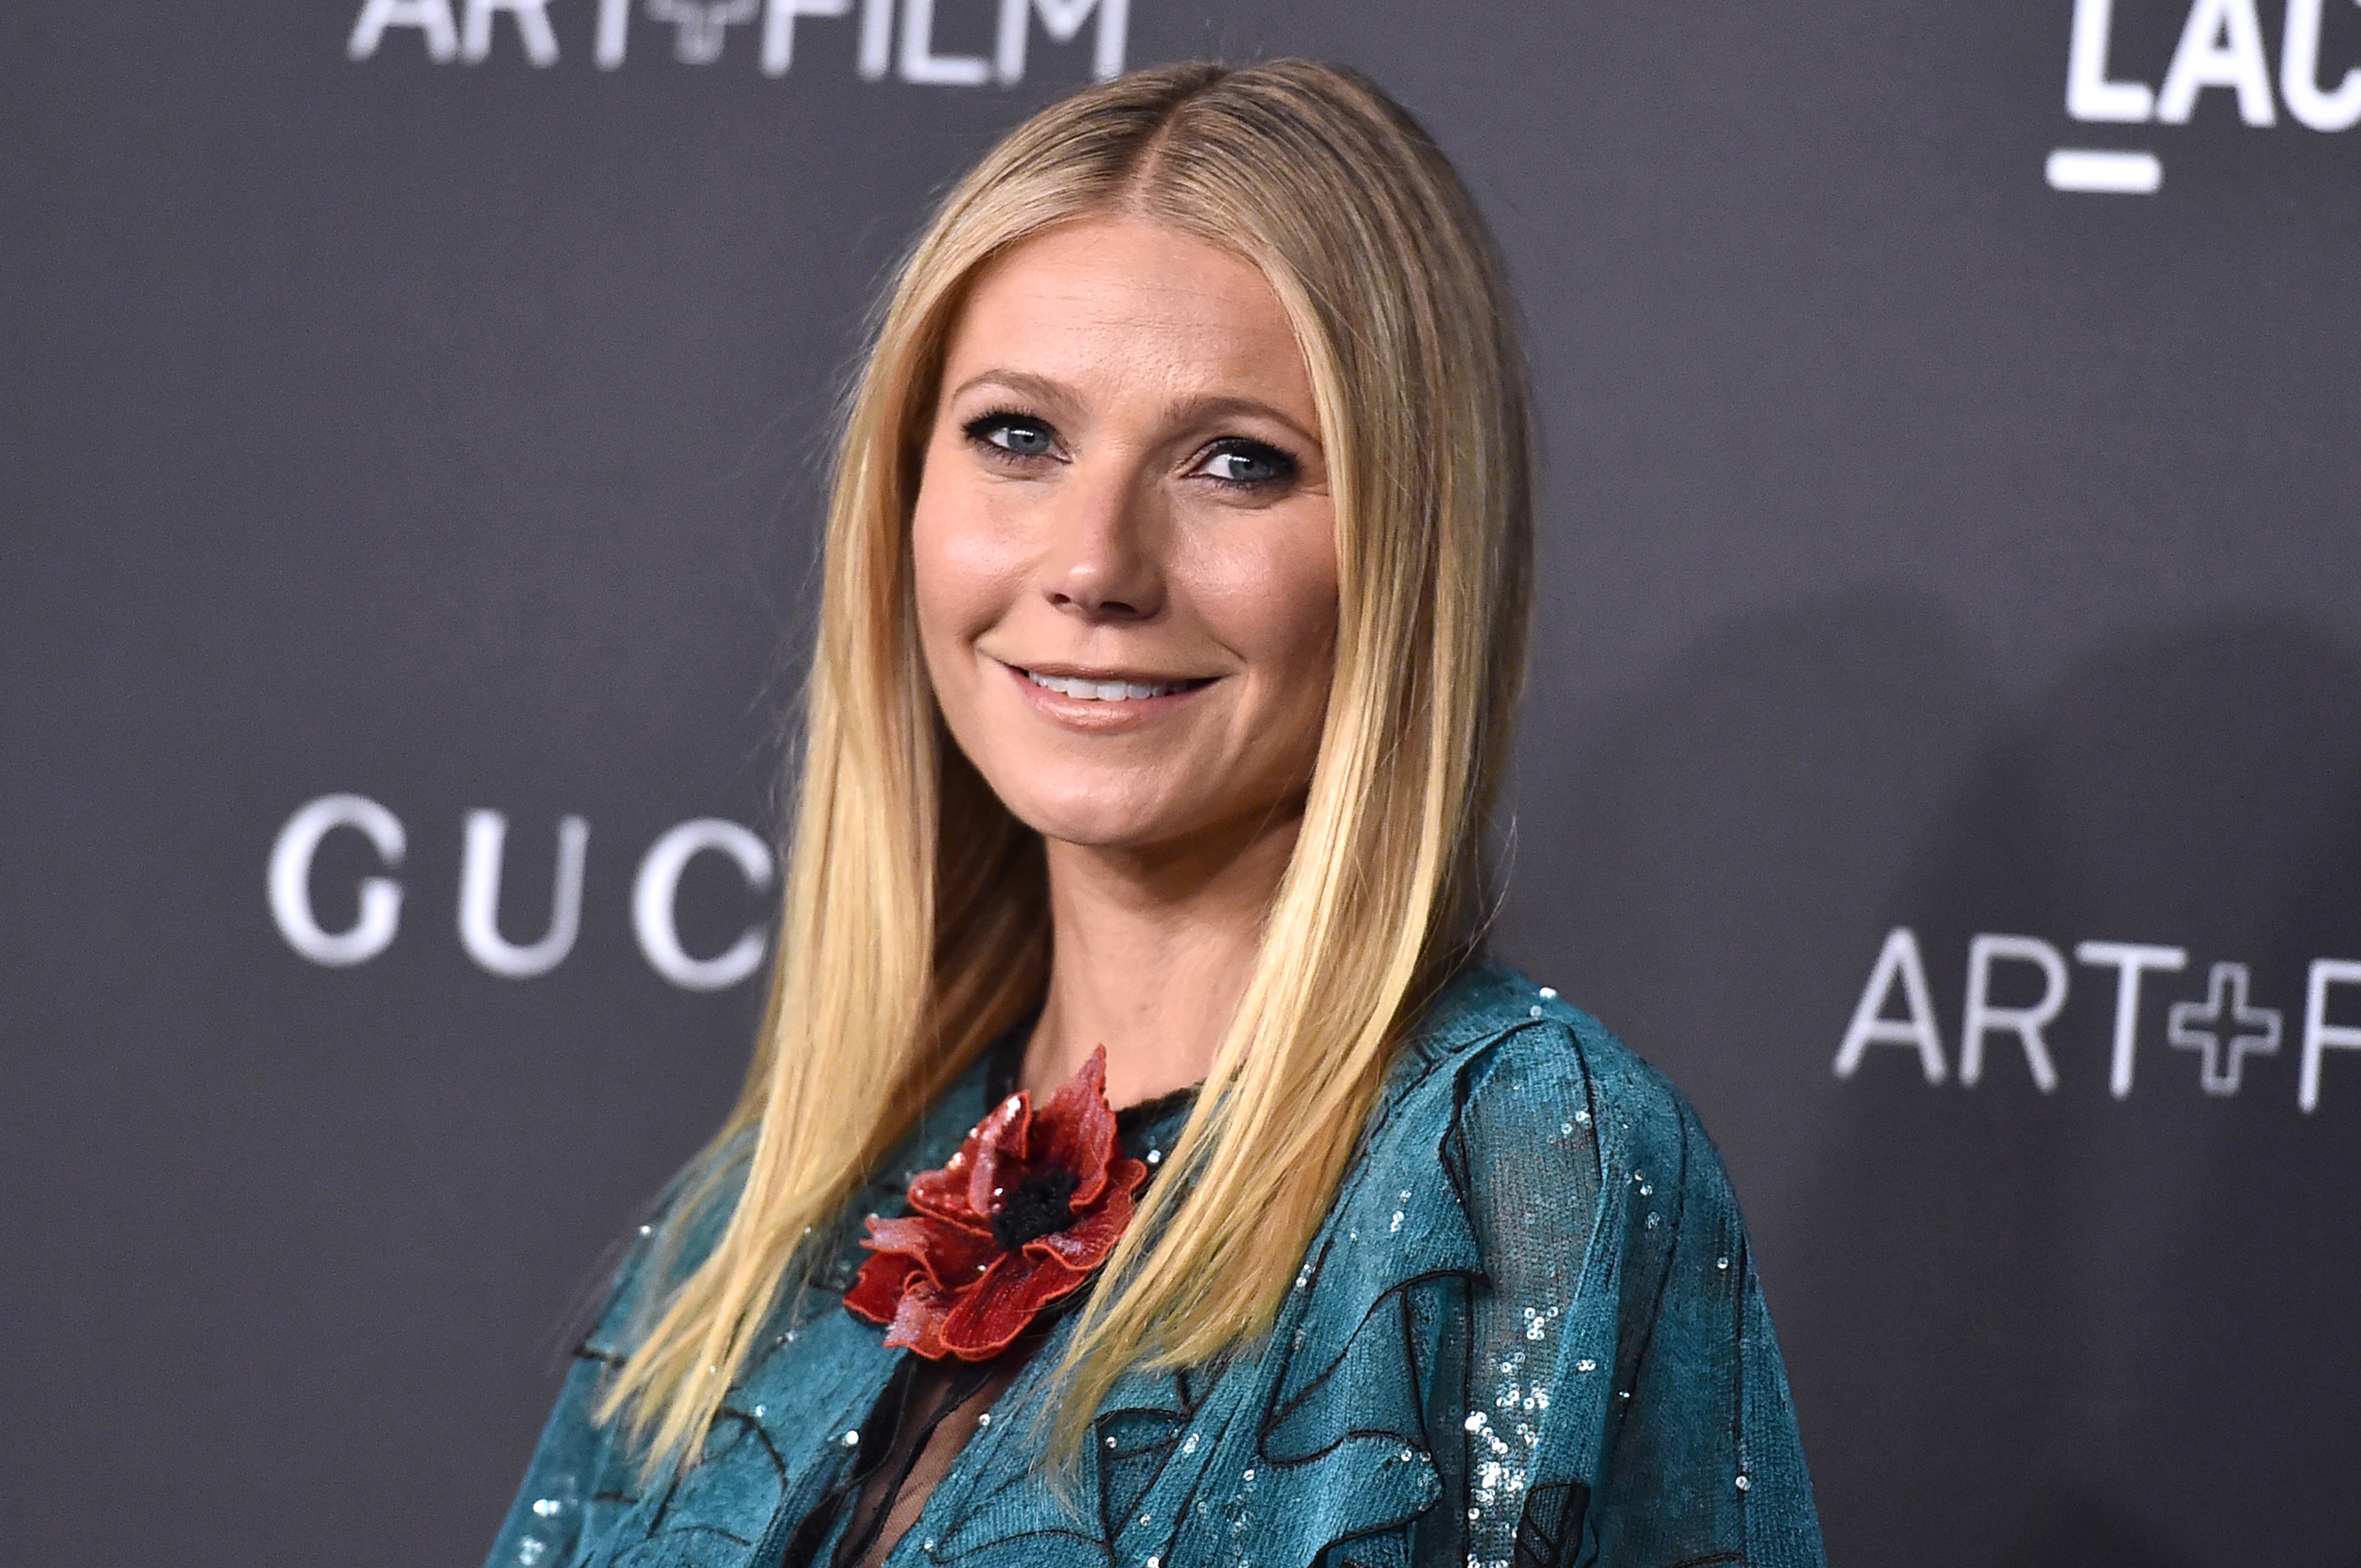 FILE - In this Nov. 7, 2015 file photo, Gwyneth Paltrow attends LACMA 2015 Art+Film Gala at LACMA in Los Angeles, Calif.  Authorities are searching for three men who robbed PaltrowÂ?s Goop pop-up shop in New York City of more than $173,000 worth of jewelry and watches. It happened Saturday afternoon, Dec. 5, 2015, at the lifestyle siteÂ?s temporary store inside The Shops at Columbus Circle in midtown ManhattanÂ?s Time Warner Center.  (Photo by Jordan Strauss/Invision/AP, File)